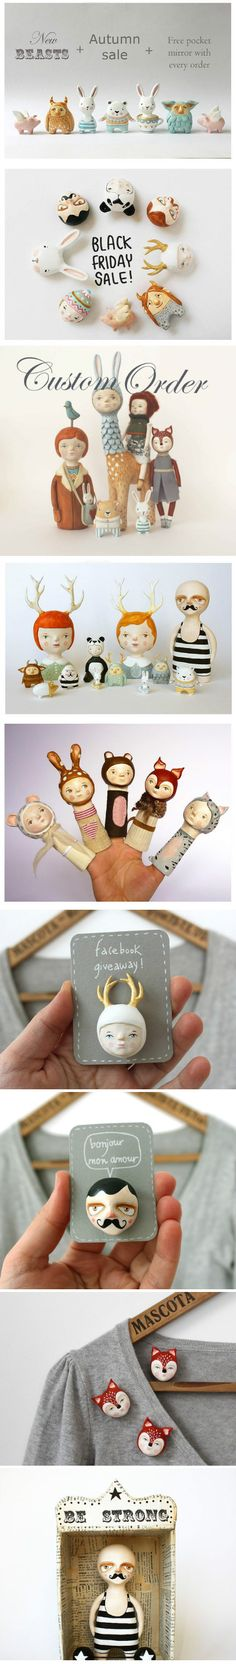 Dolls, brooches, finger puppets... by Sweet Bestiary http://www.sweetbestiary.com/